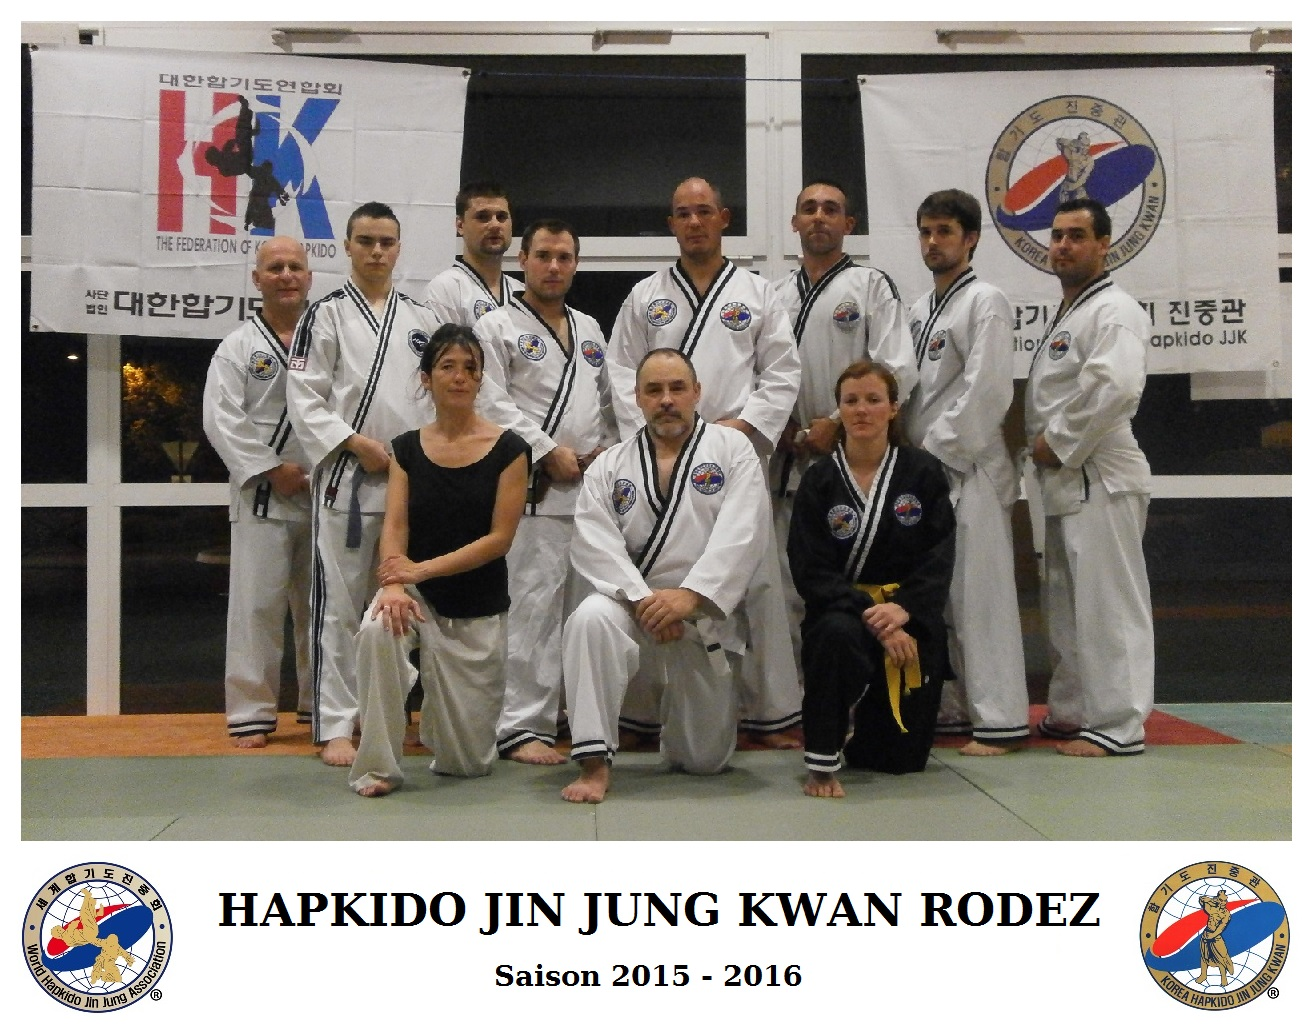 Groupe Hapkido Jin Jung Kwan Rodez